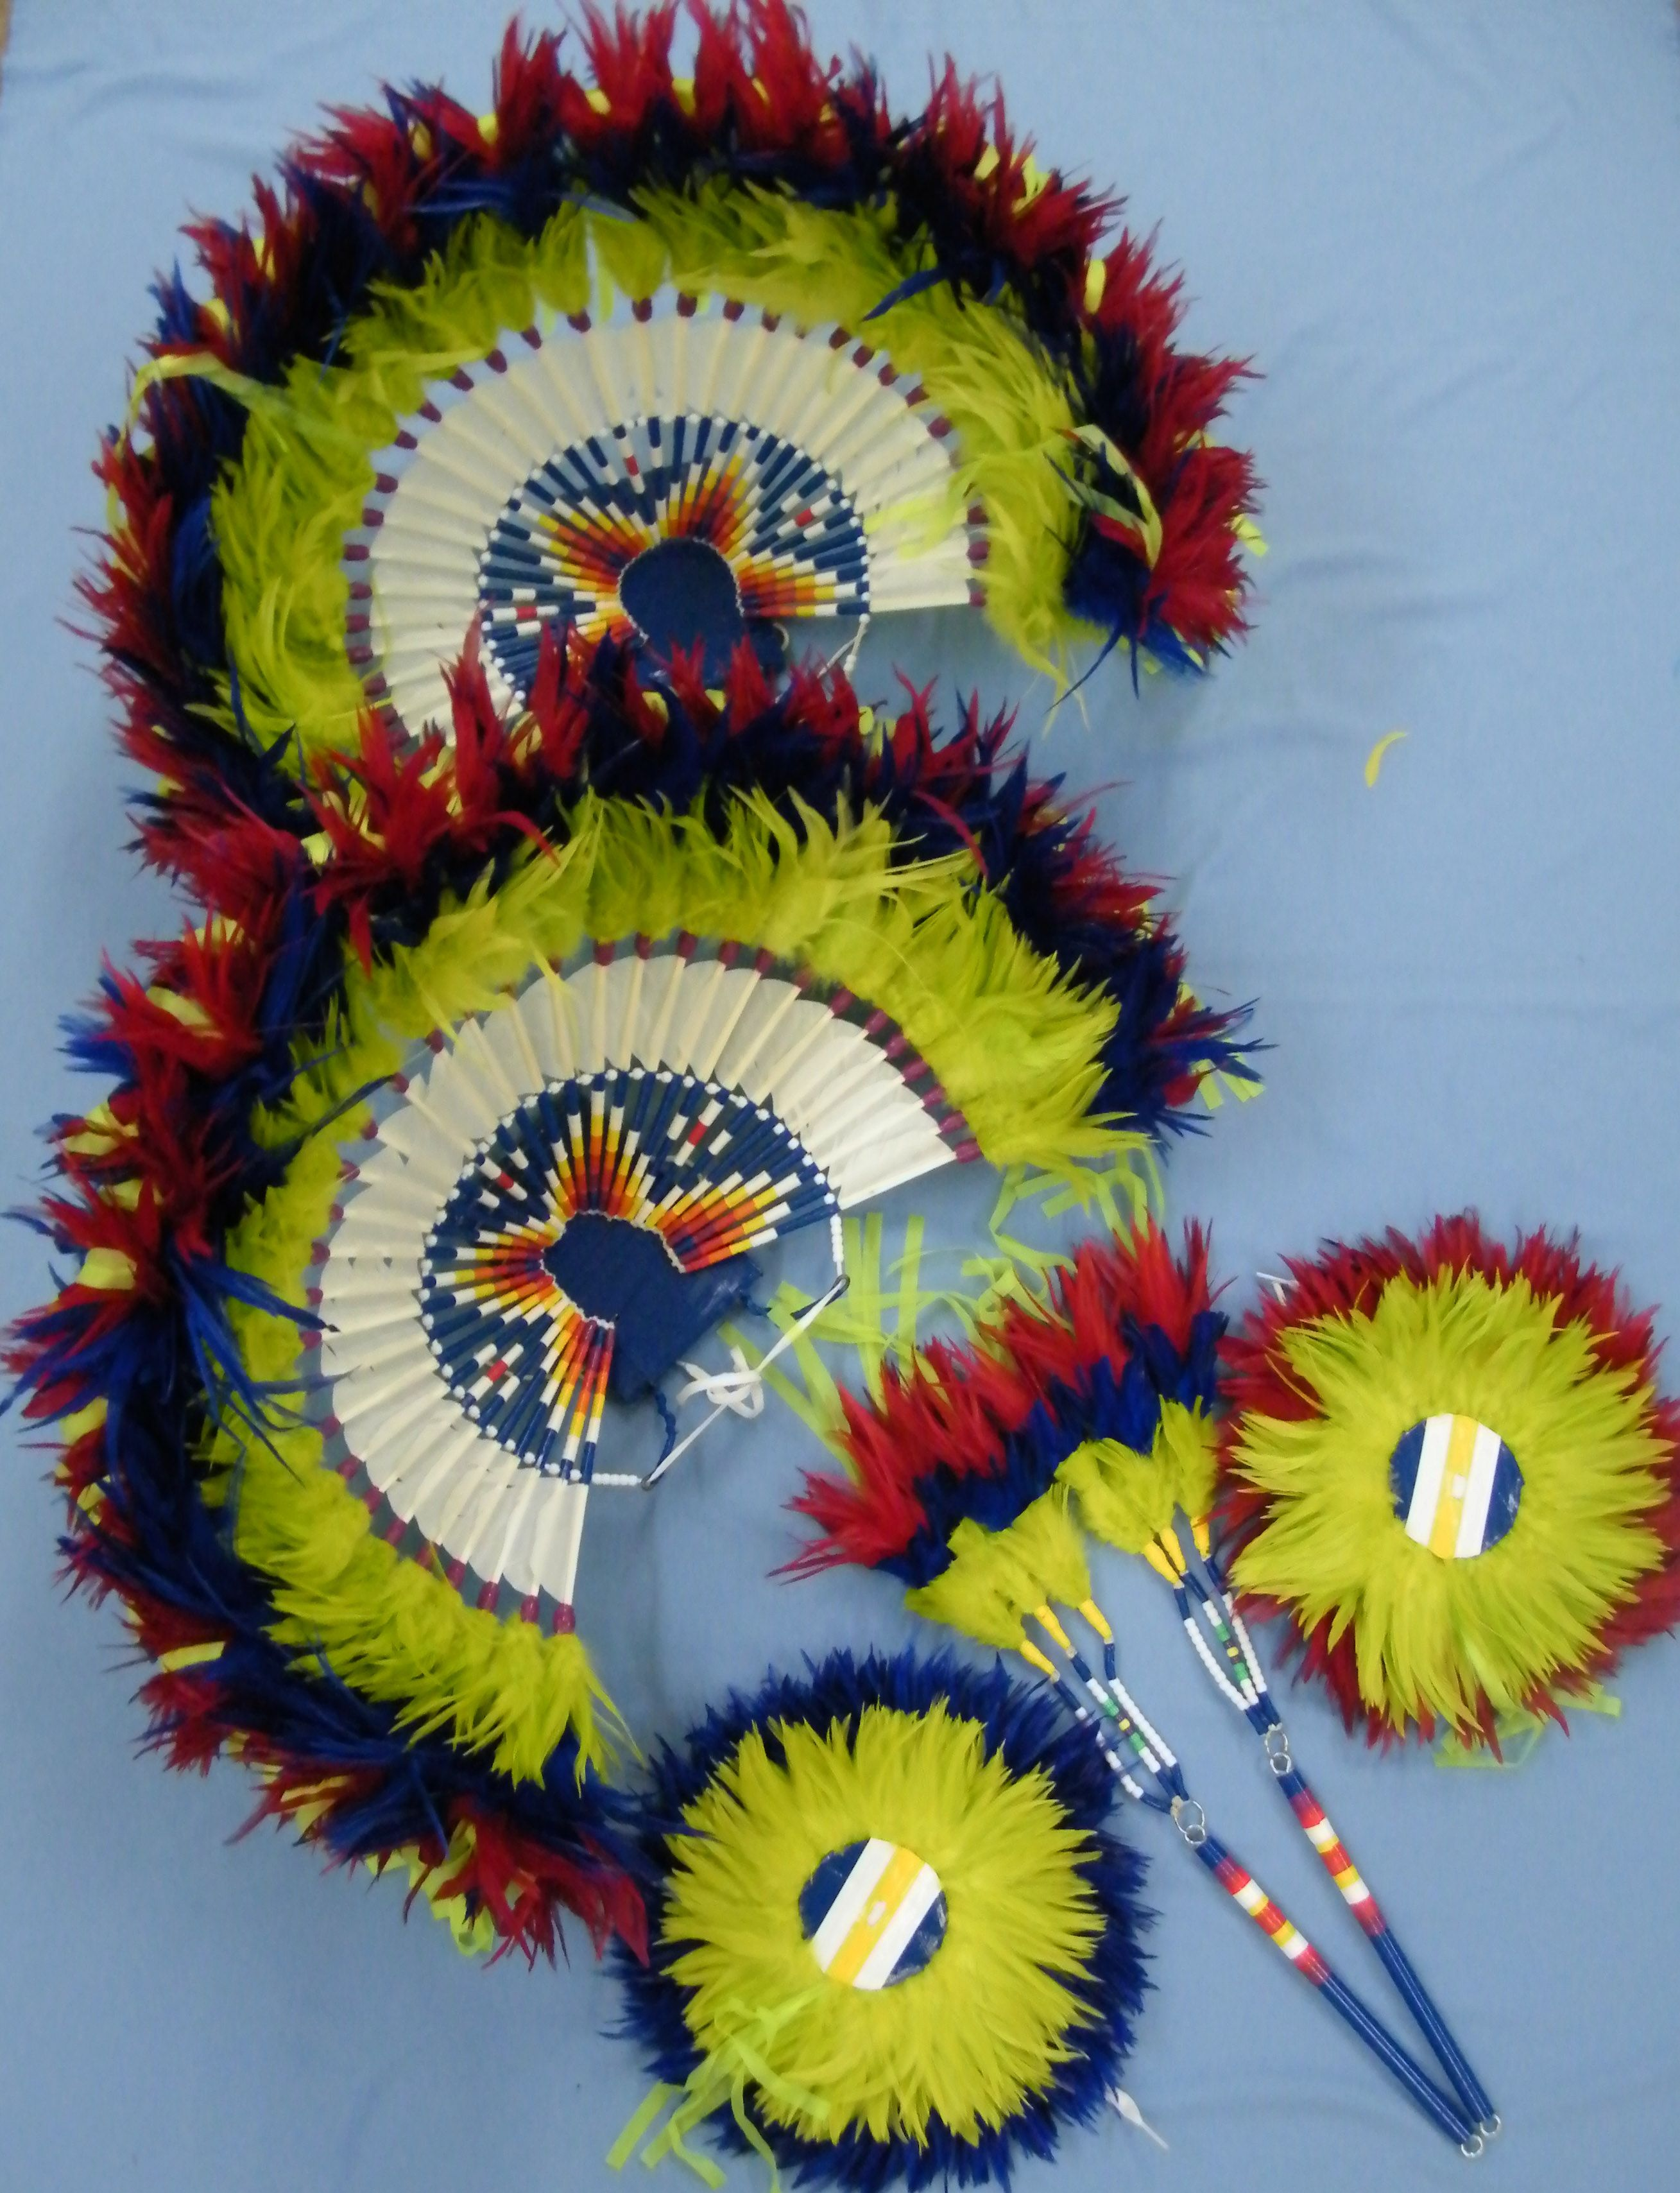 Tagged with pow wow beadwork for sale